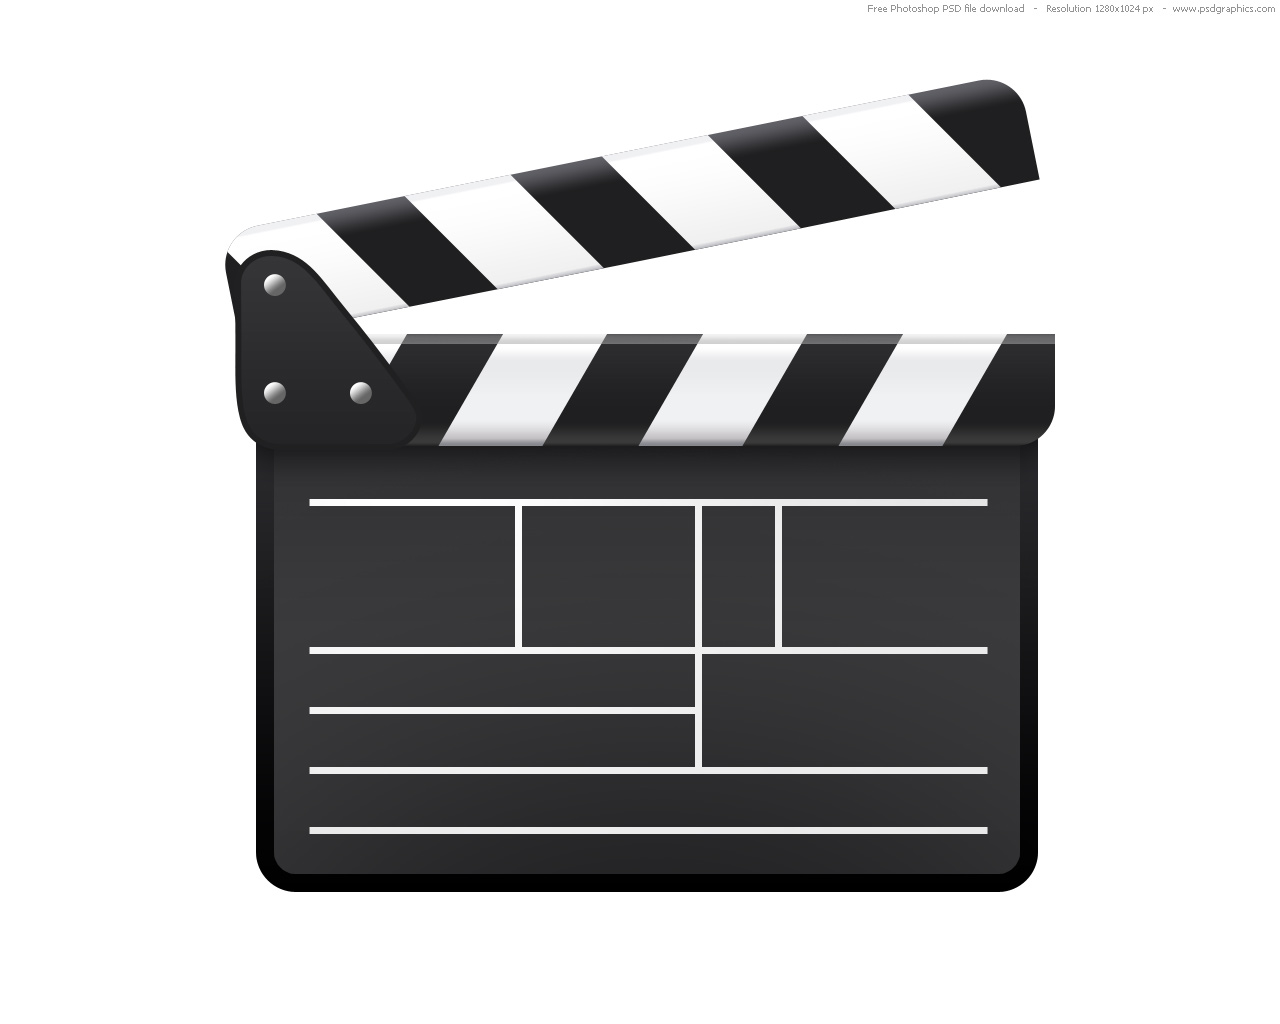 1280x1024 Movie Theater Clipart Black And White Clipart Panda